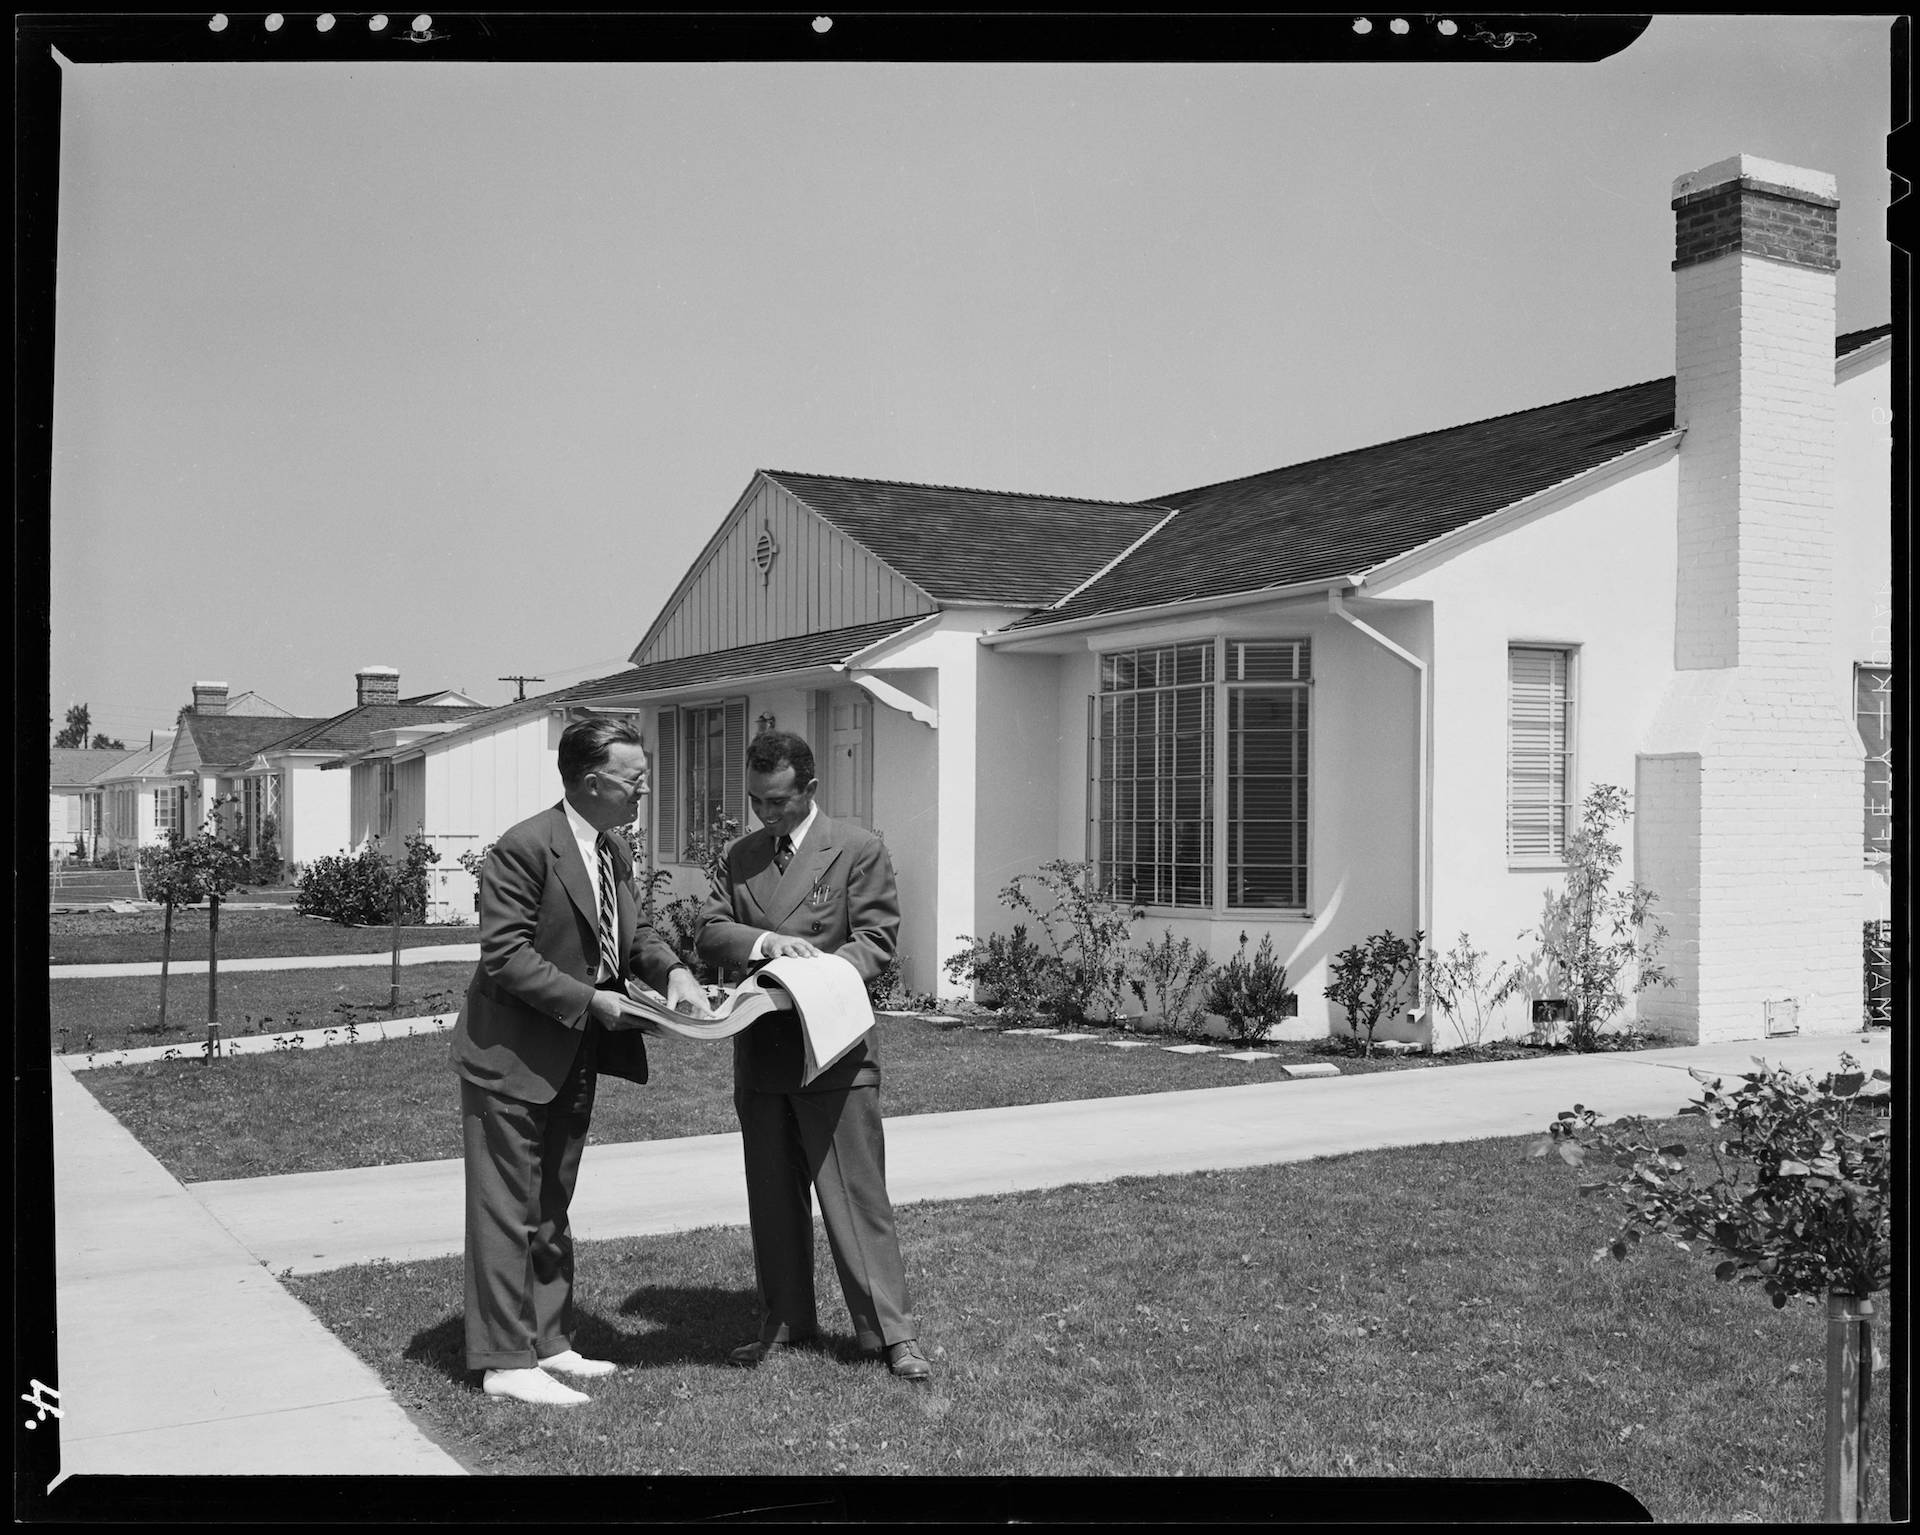 A 1940 publicity shot for the Crenshaw Park housing development